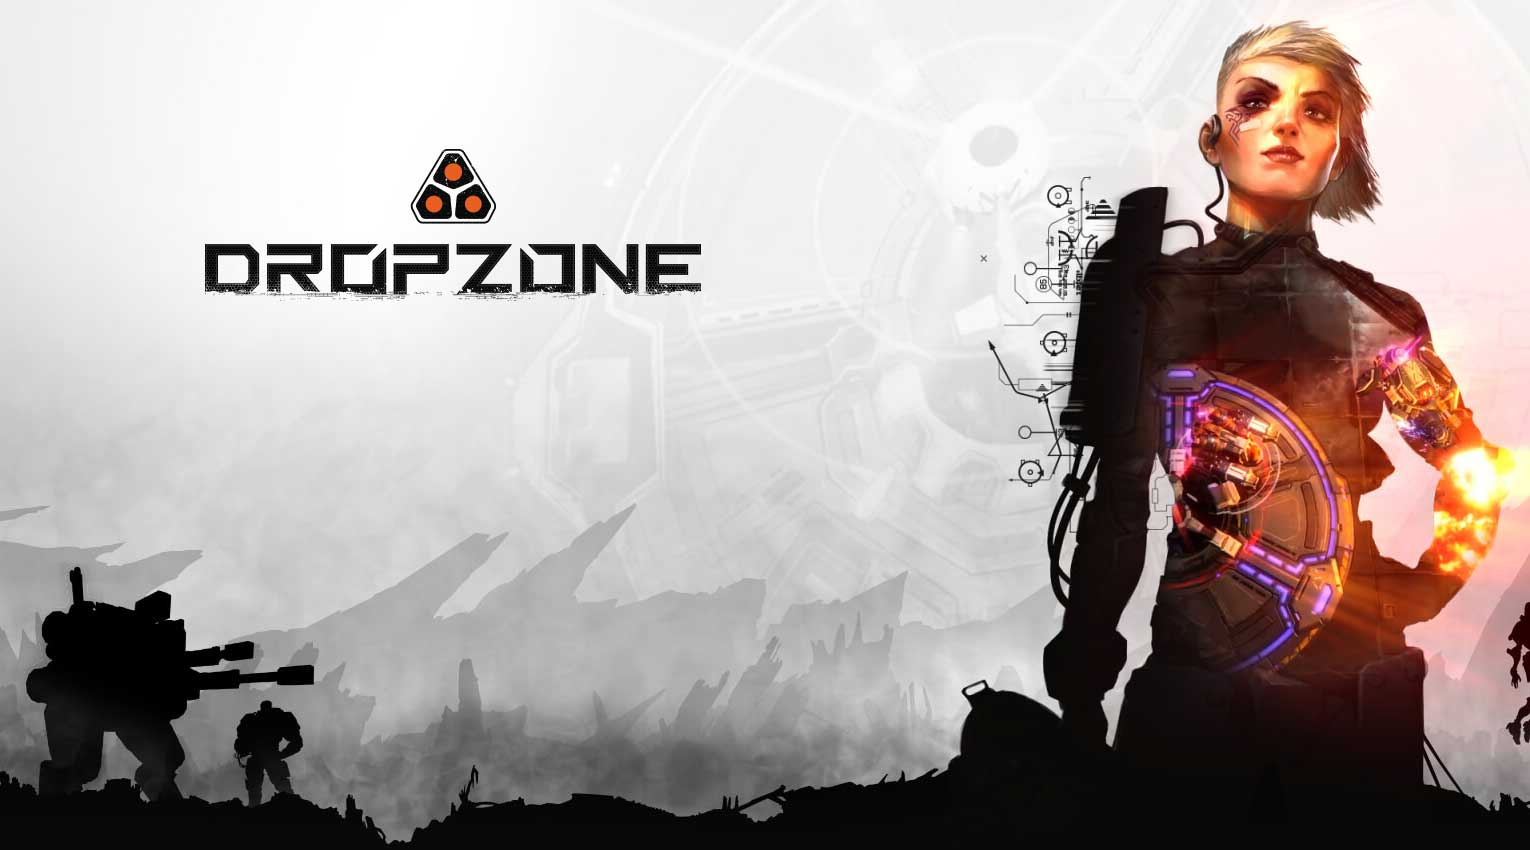 dropzone-gameli-1f